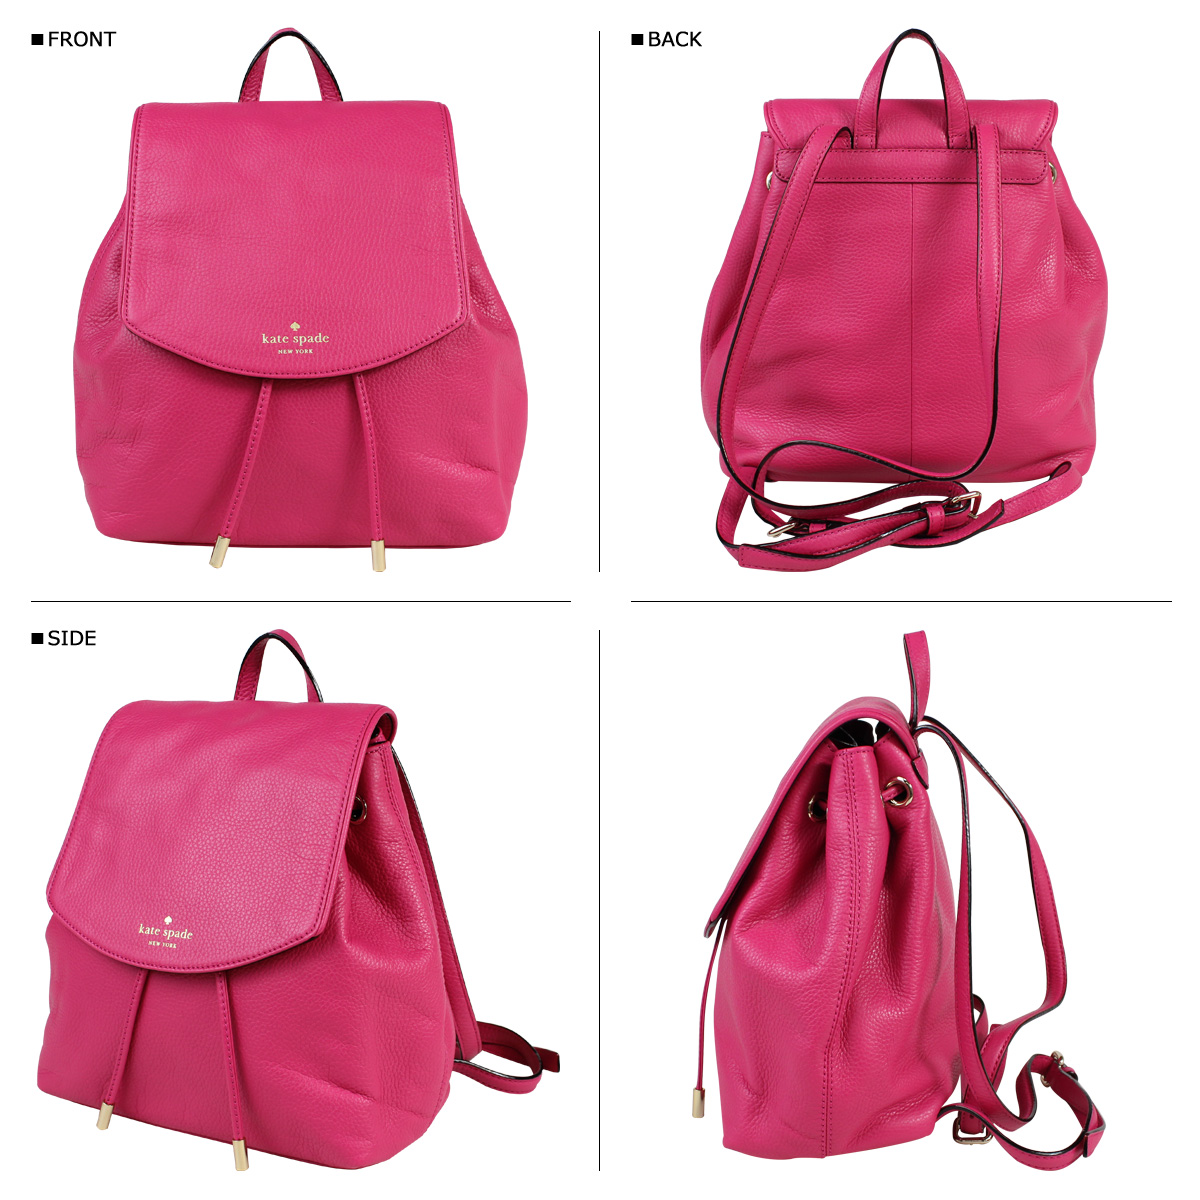 Kate Spade Pink Bag Rucksack Backpack Wkru3939 686 Ladies 8 2 New In Stock